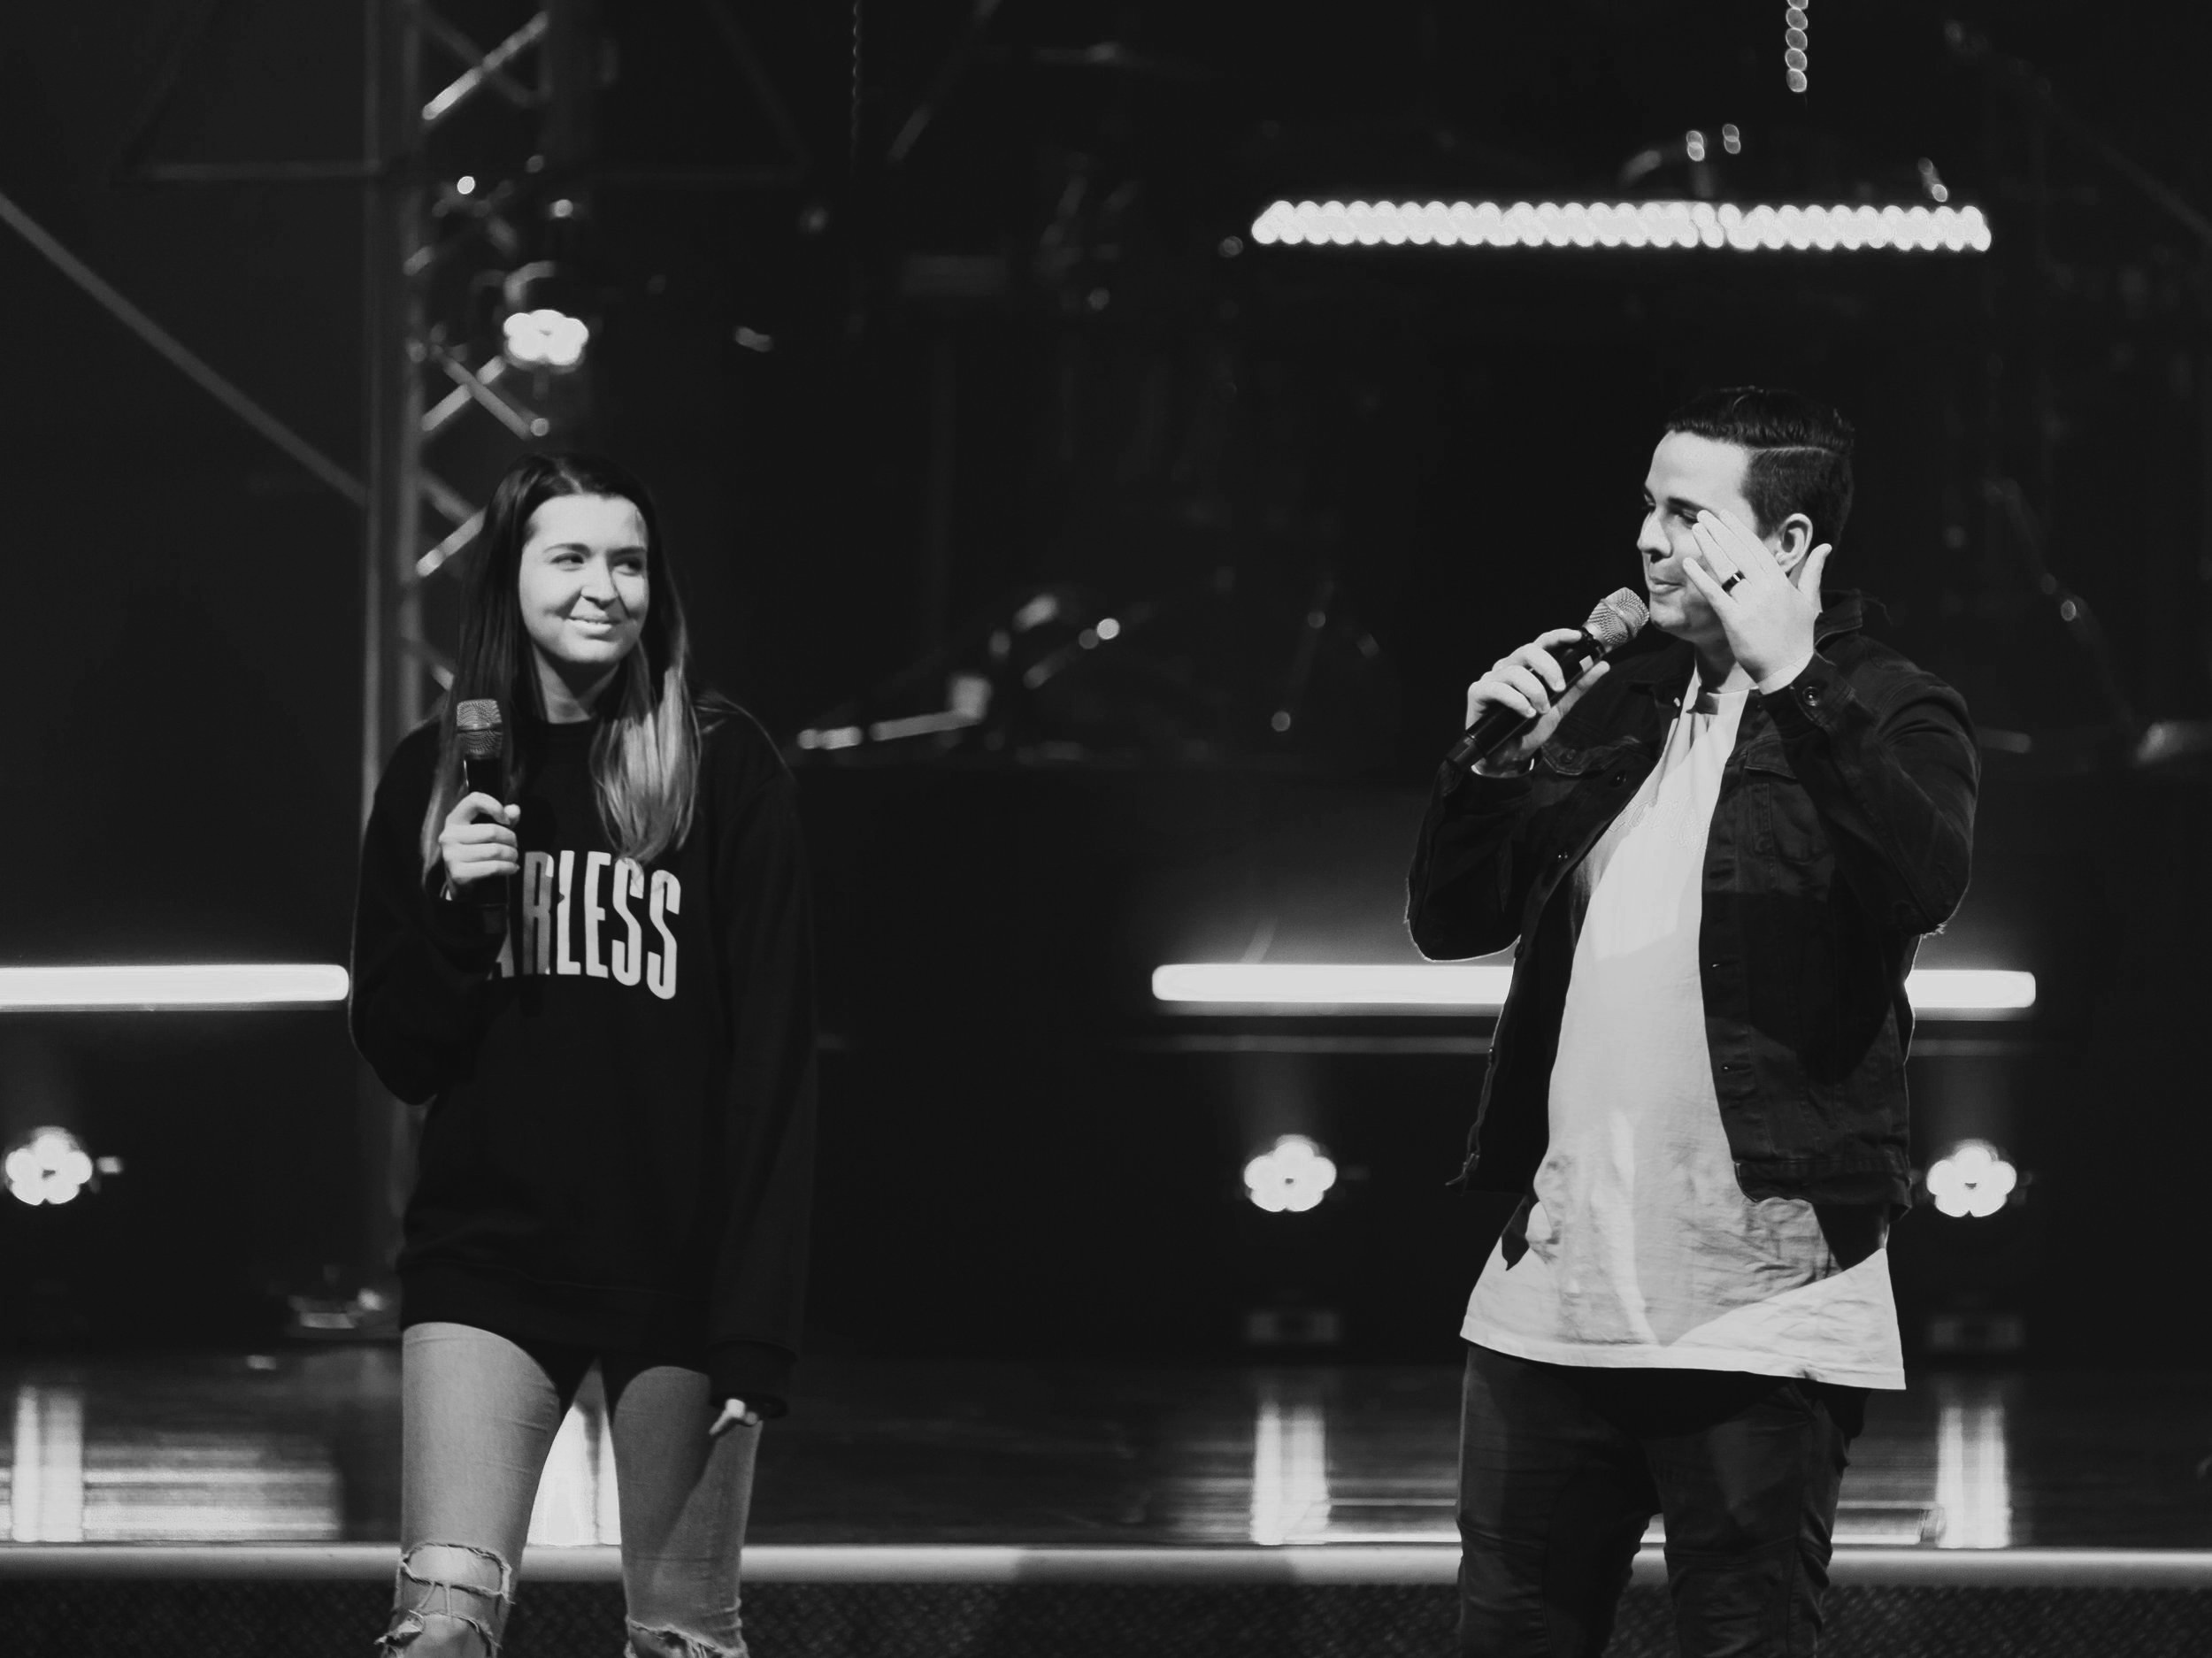 STEVEN & ASHLEE LAWRANCE - — YOUR HOSTSAlone we can do so little, together we can do so much! Awaken Conference is an opportunity for teenagers all across Queensland to come together under one name, Jesus Christ, and be empowered to live the life that God has called us to live! The hope of this conference is that you would have an 'Awaken Moment'; that you would walk away knowing how incredible God's plans are for you. As well as that, Awaken is always a great place to hang with friends and have an awesome time. Whether you are a follower of Jesus or not, Awaken Conference is for you!